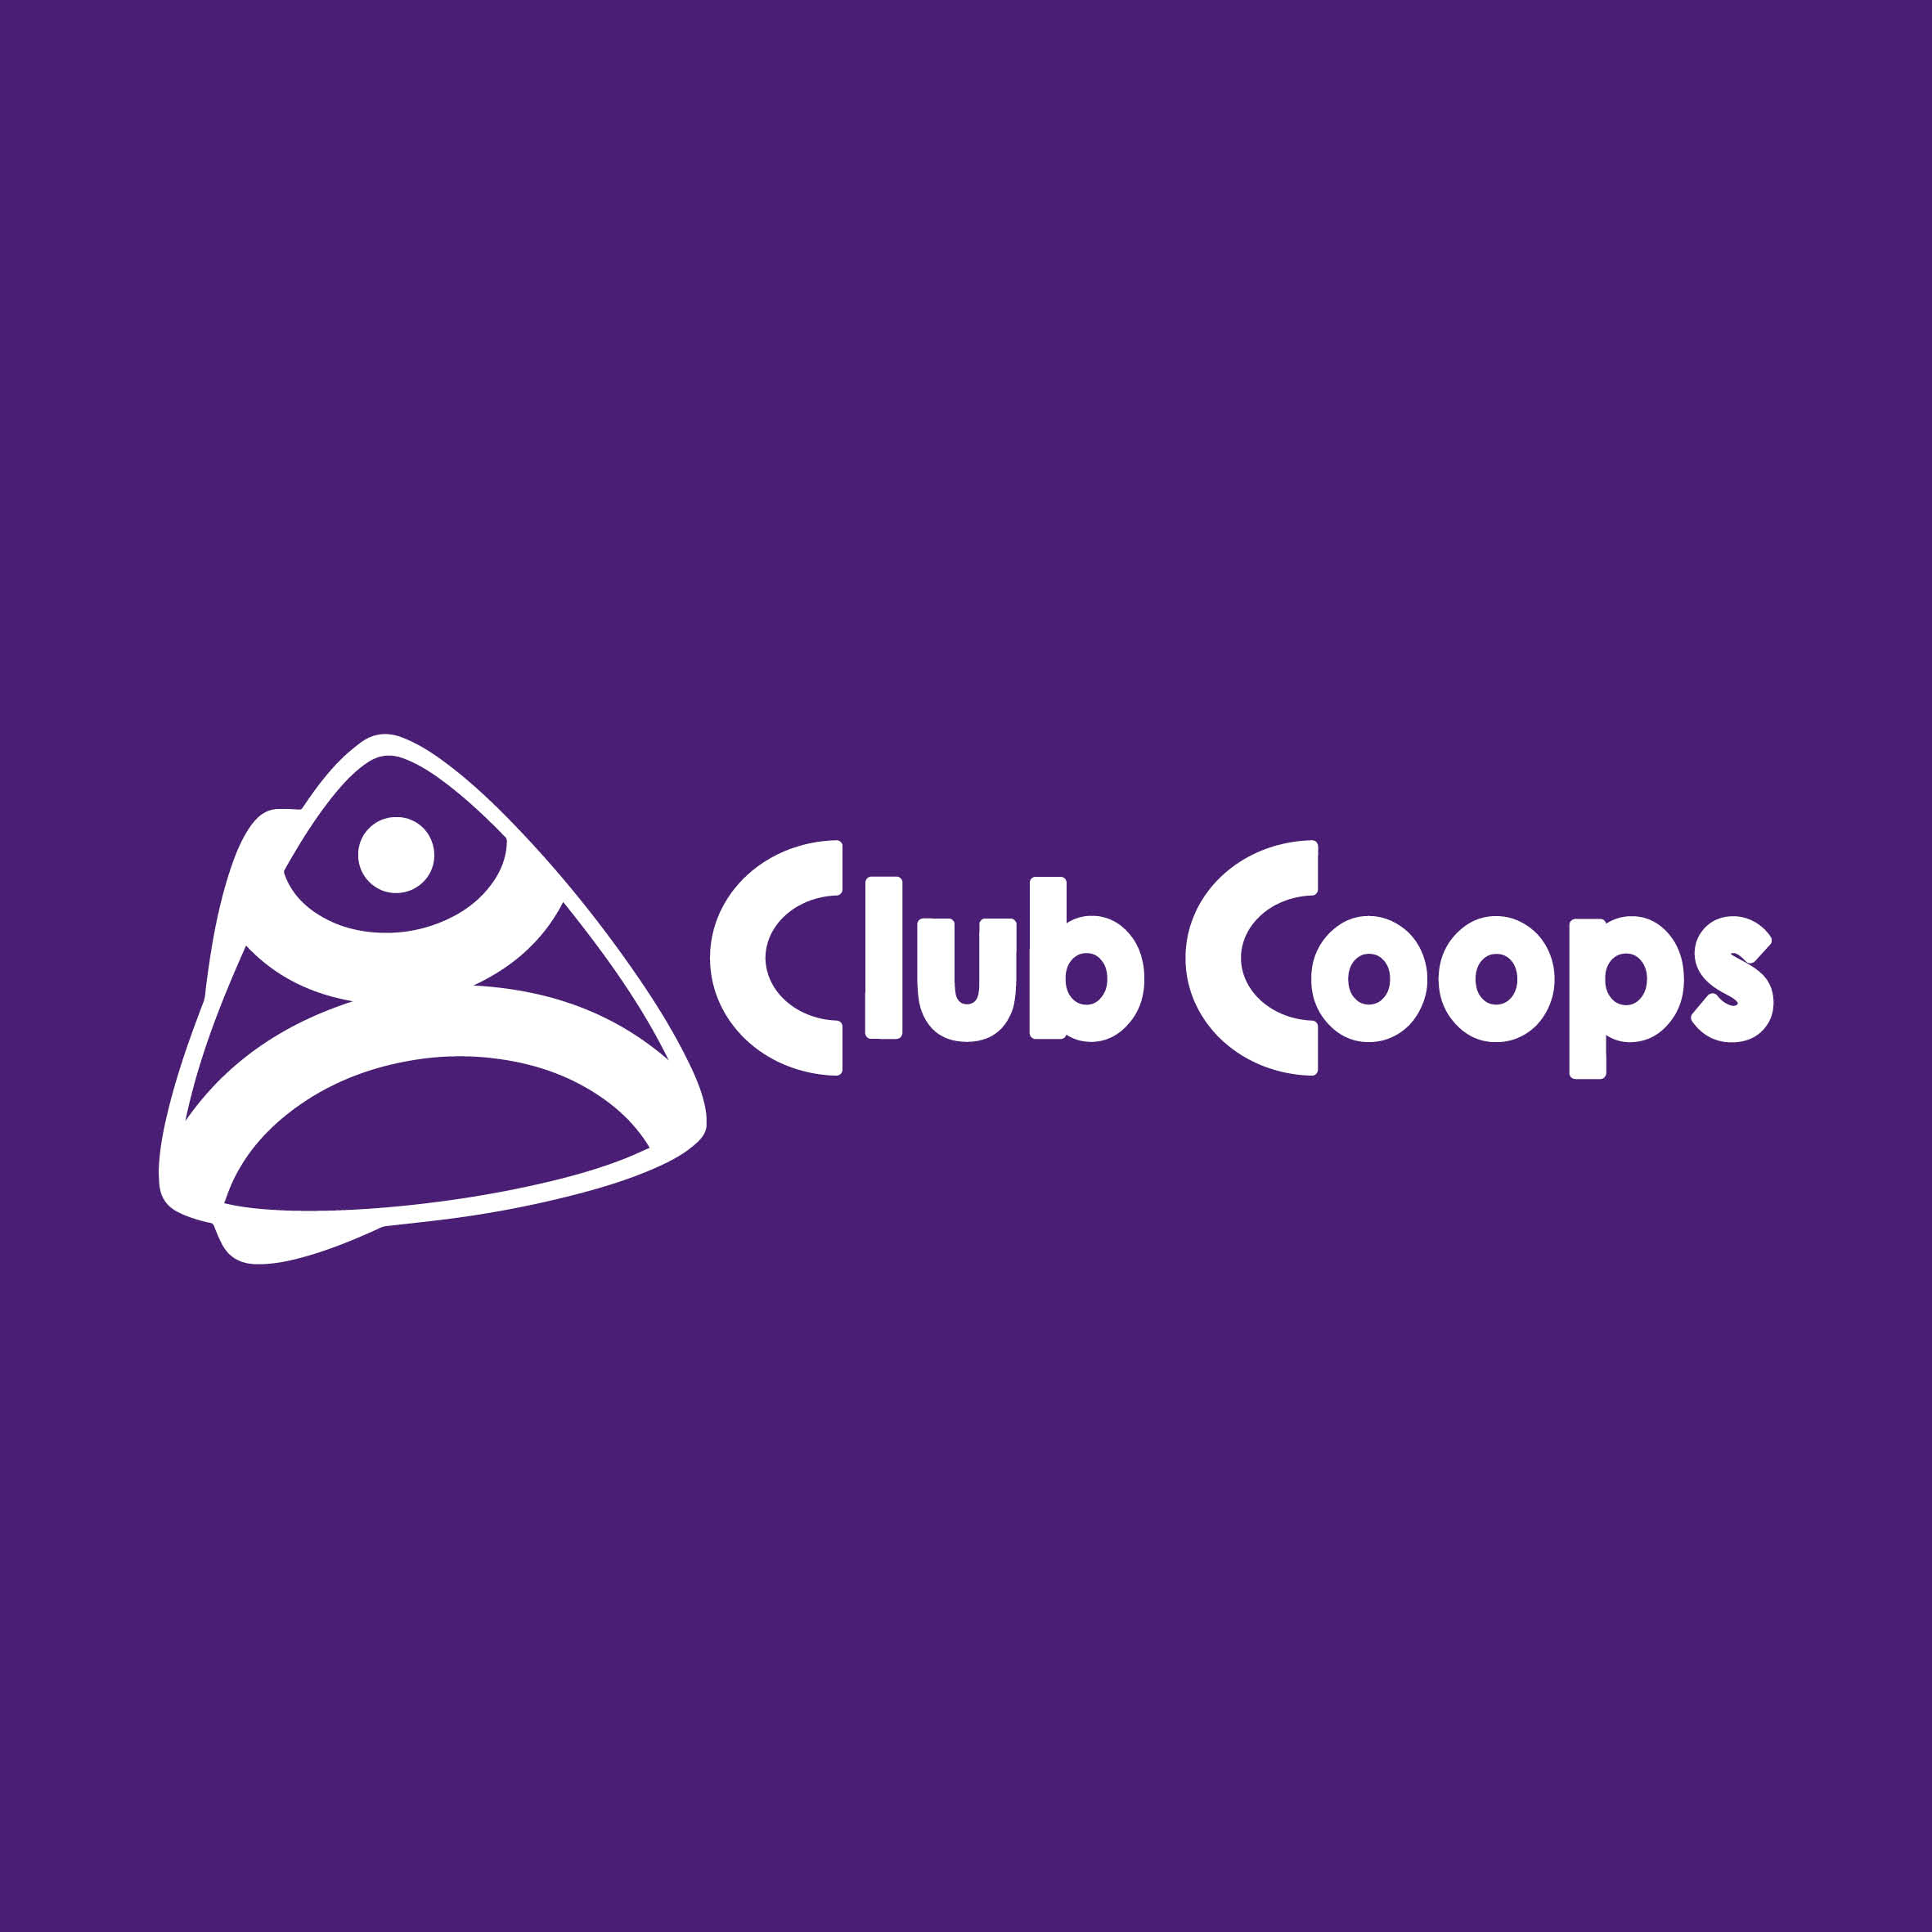 Client-logo-cover-clubcoops.jpg